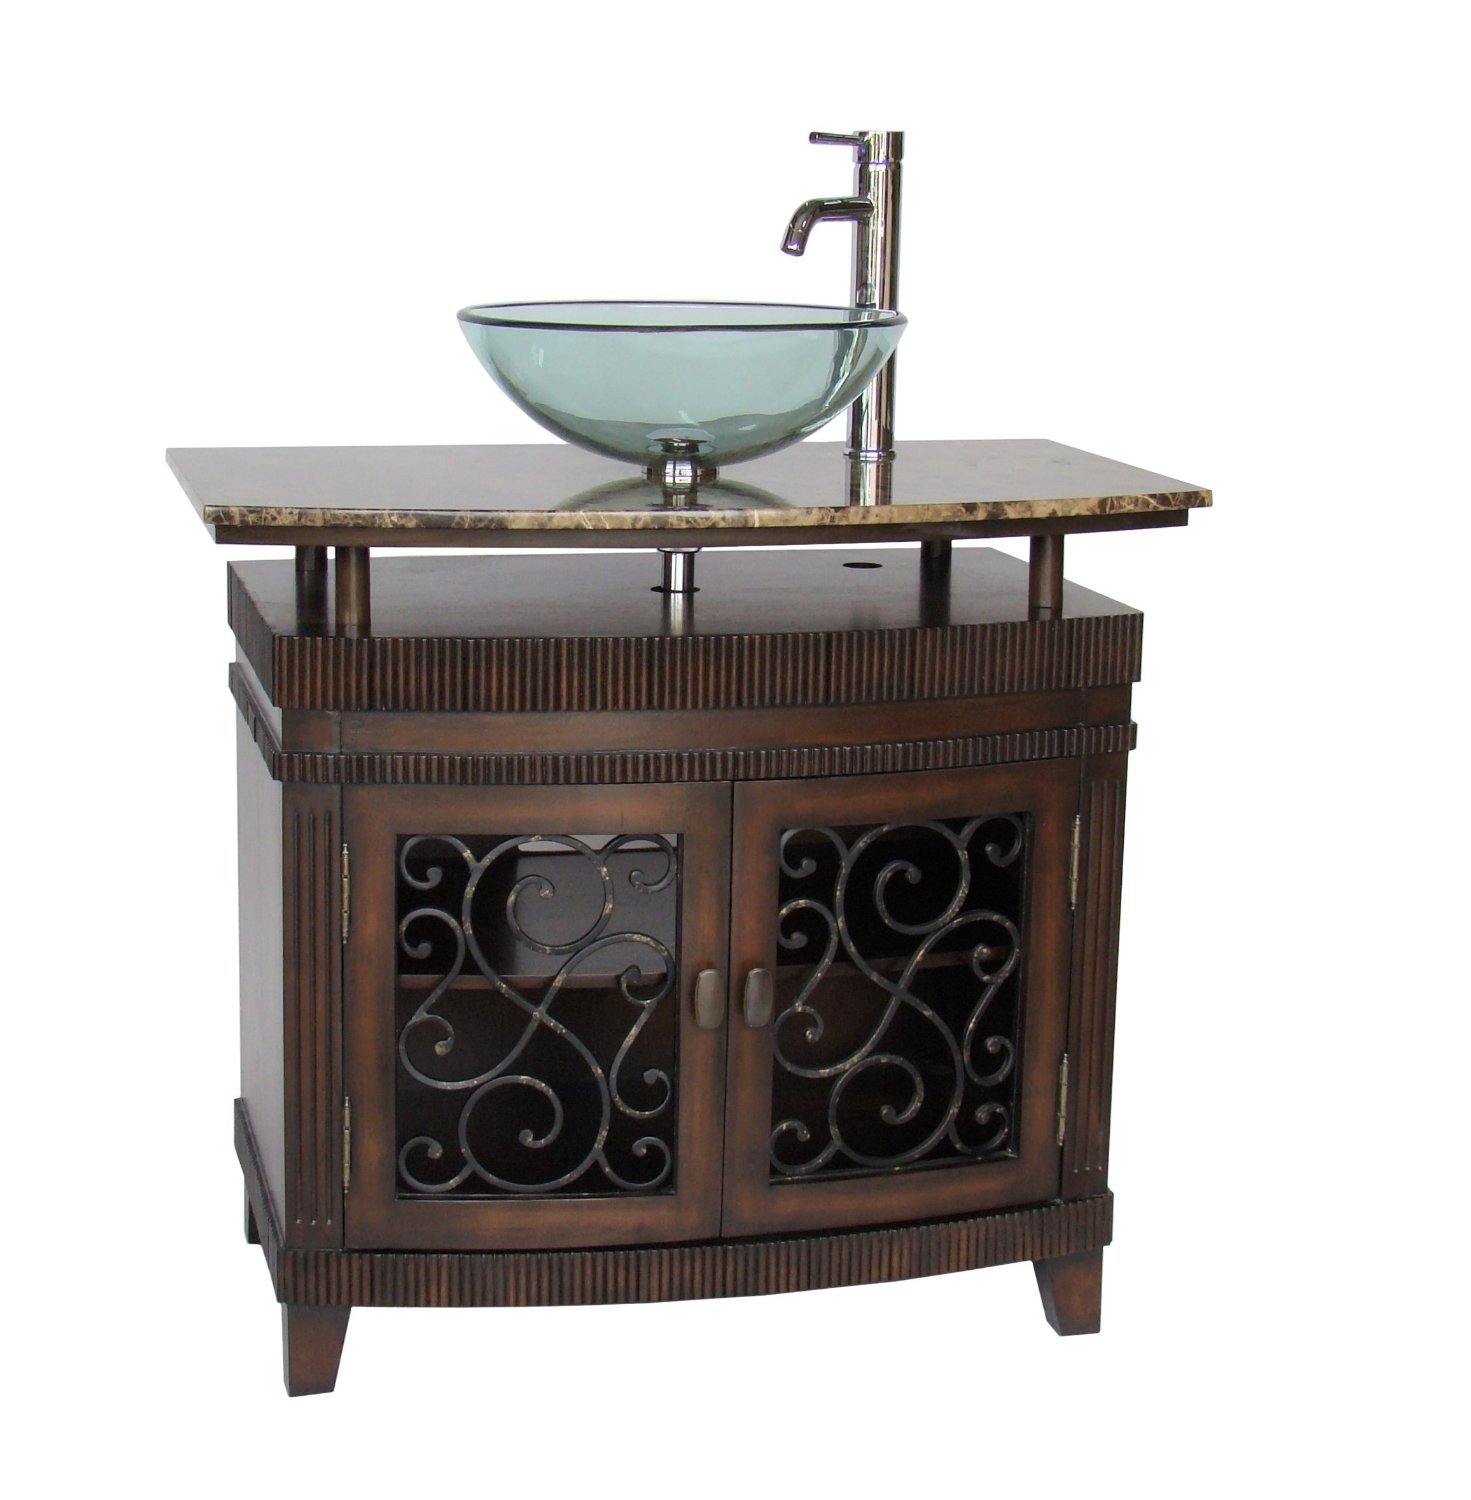 30 Bathroom Pedestal Vanity Glass Vessel Sink Set adelina 36 inch vessel sink bathroom vanity, medium brown mahogany